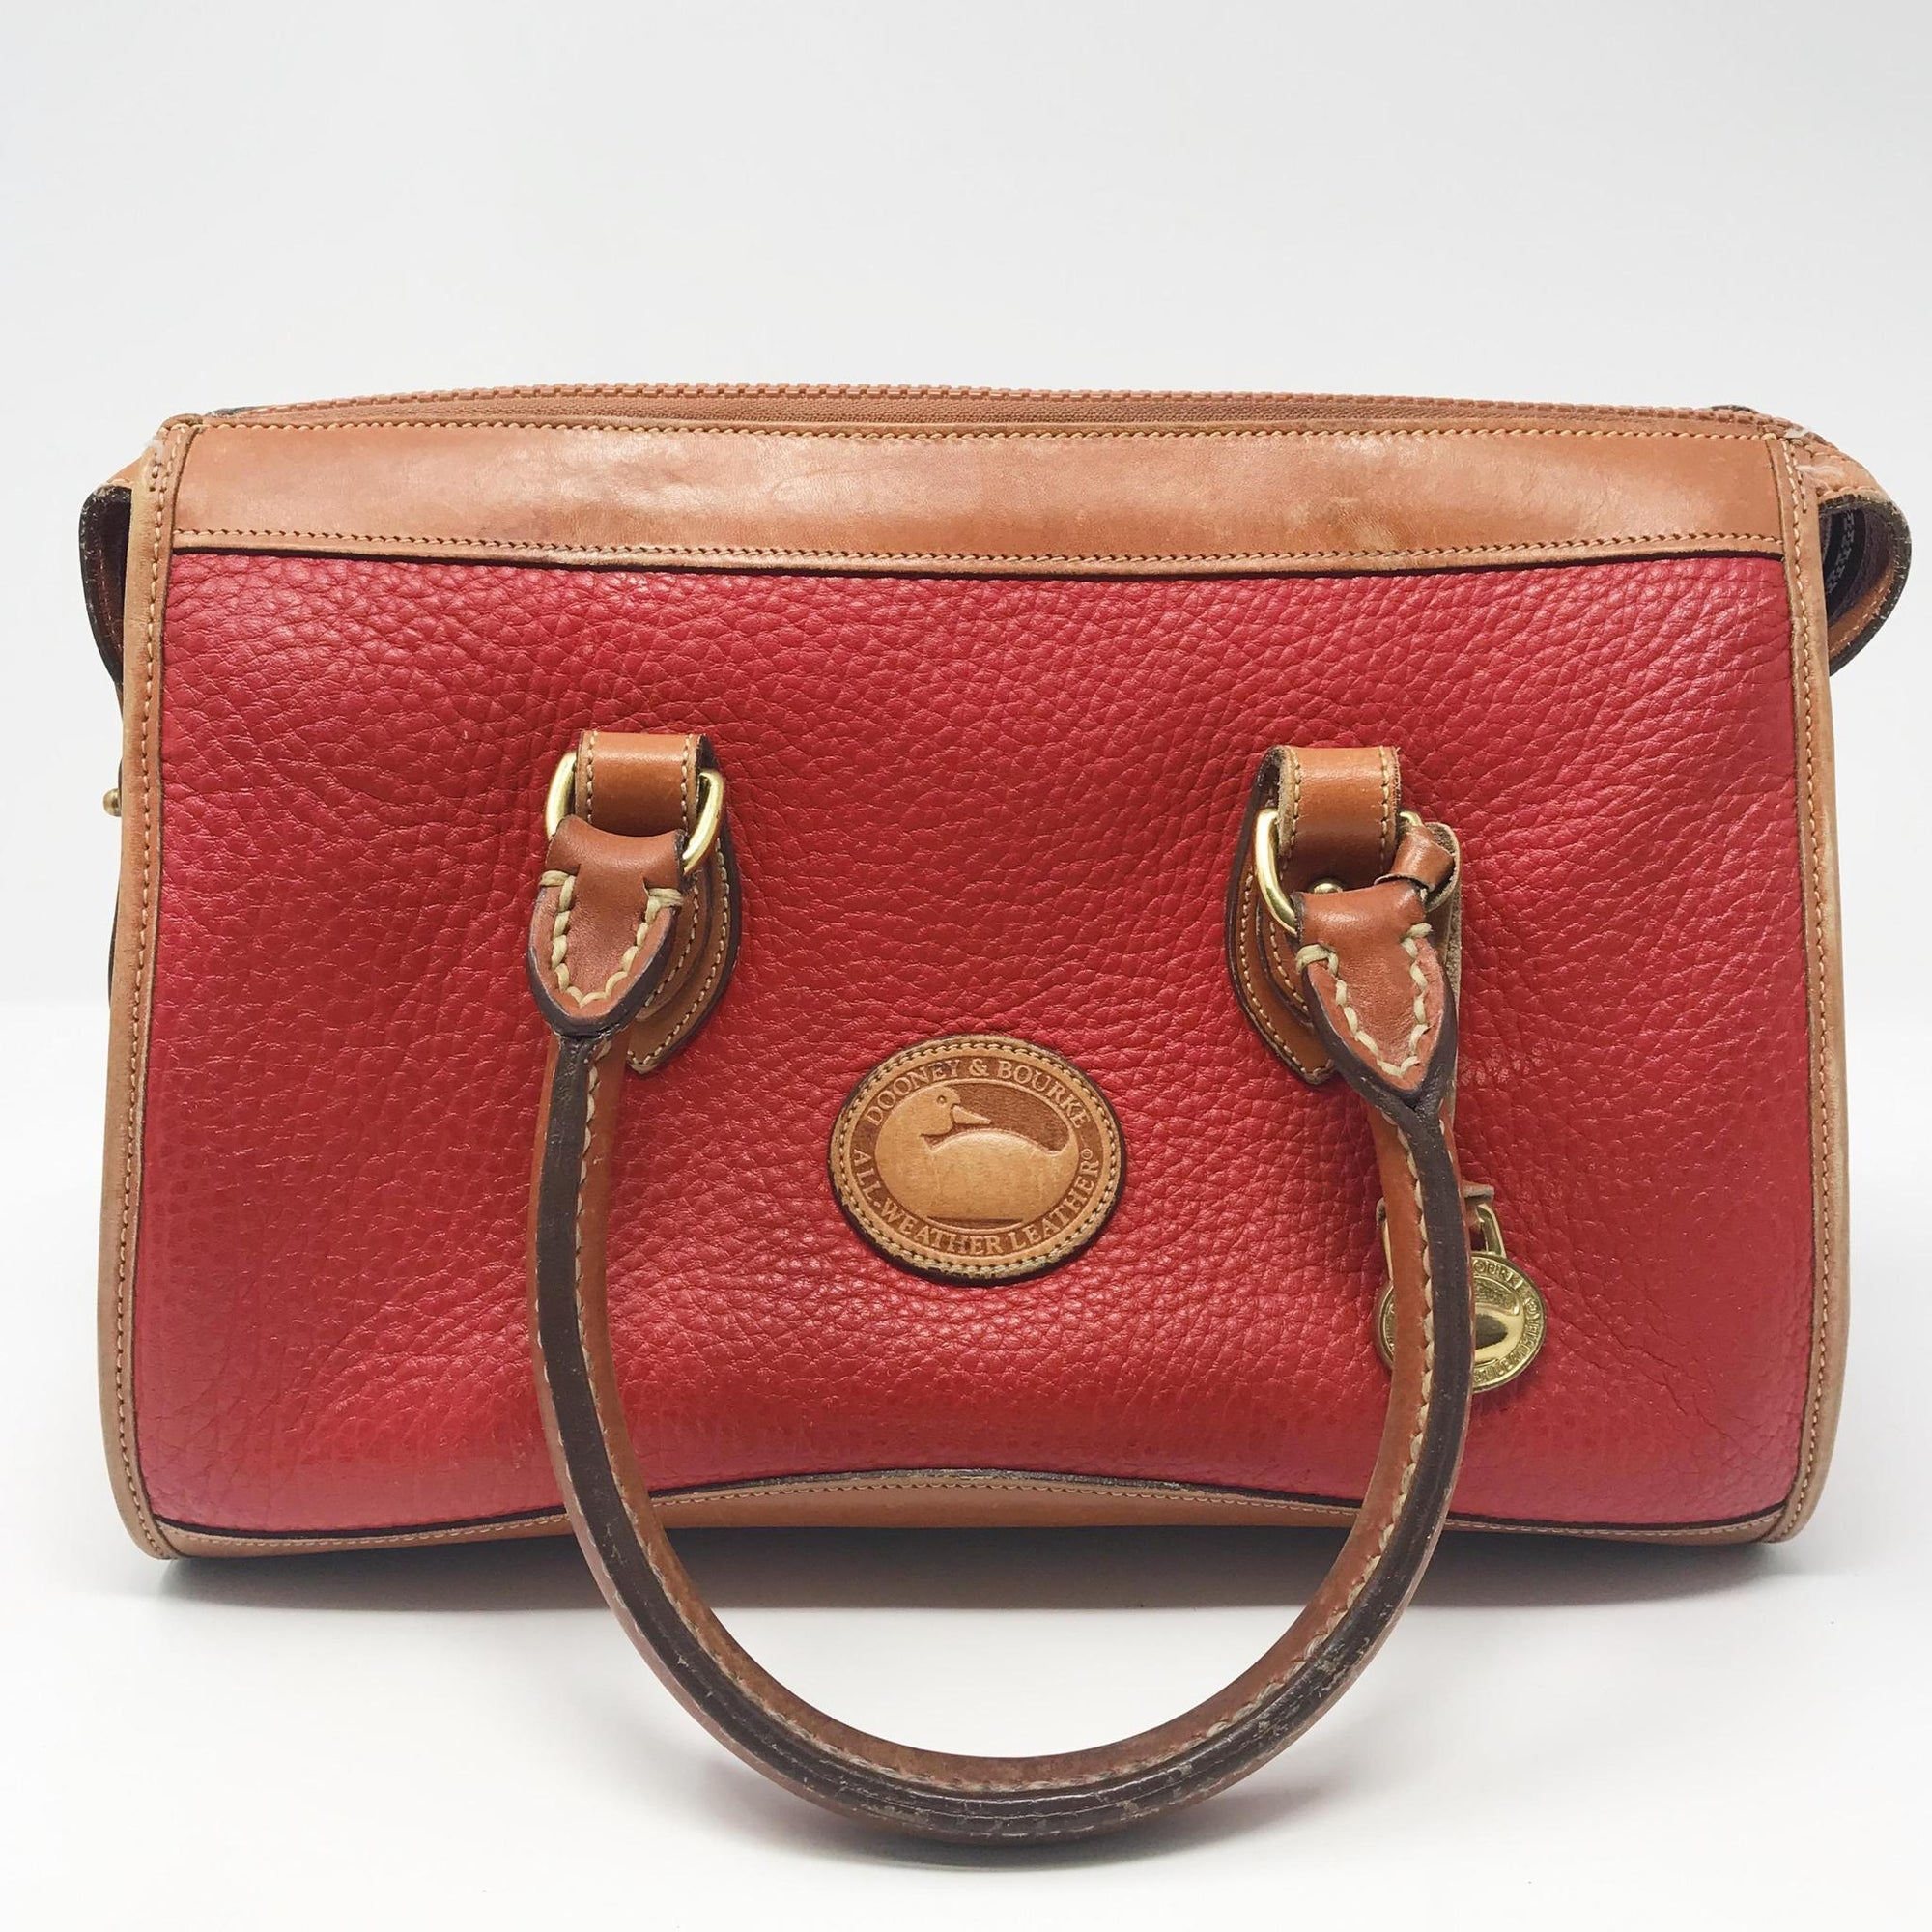 Vintage Red Dooney & Bourke Handbag